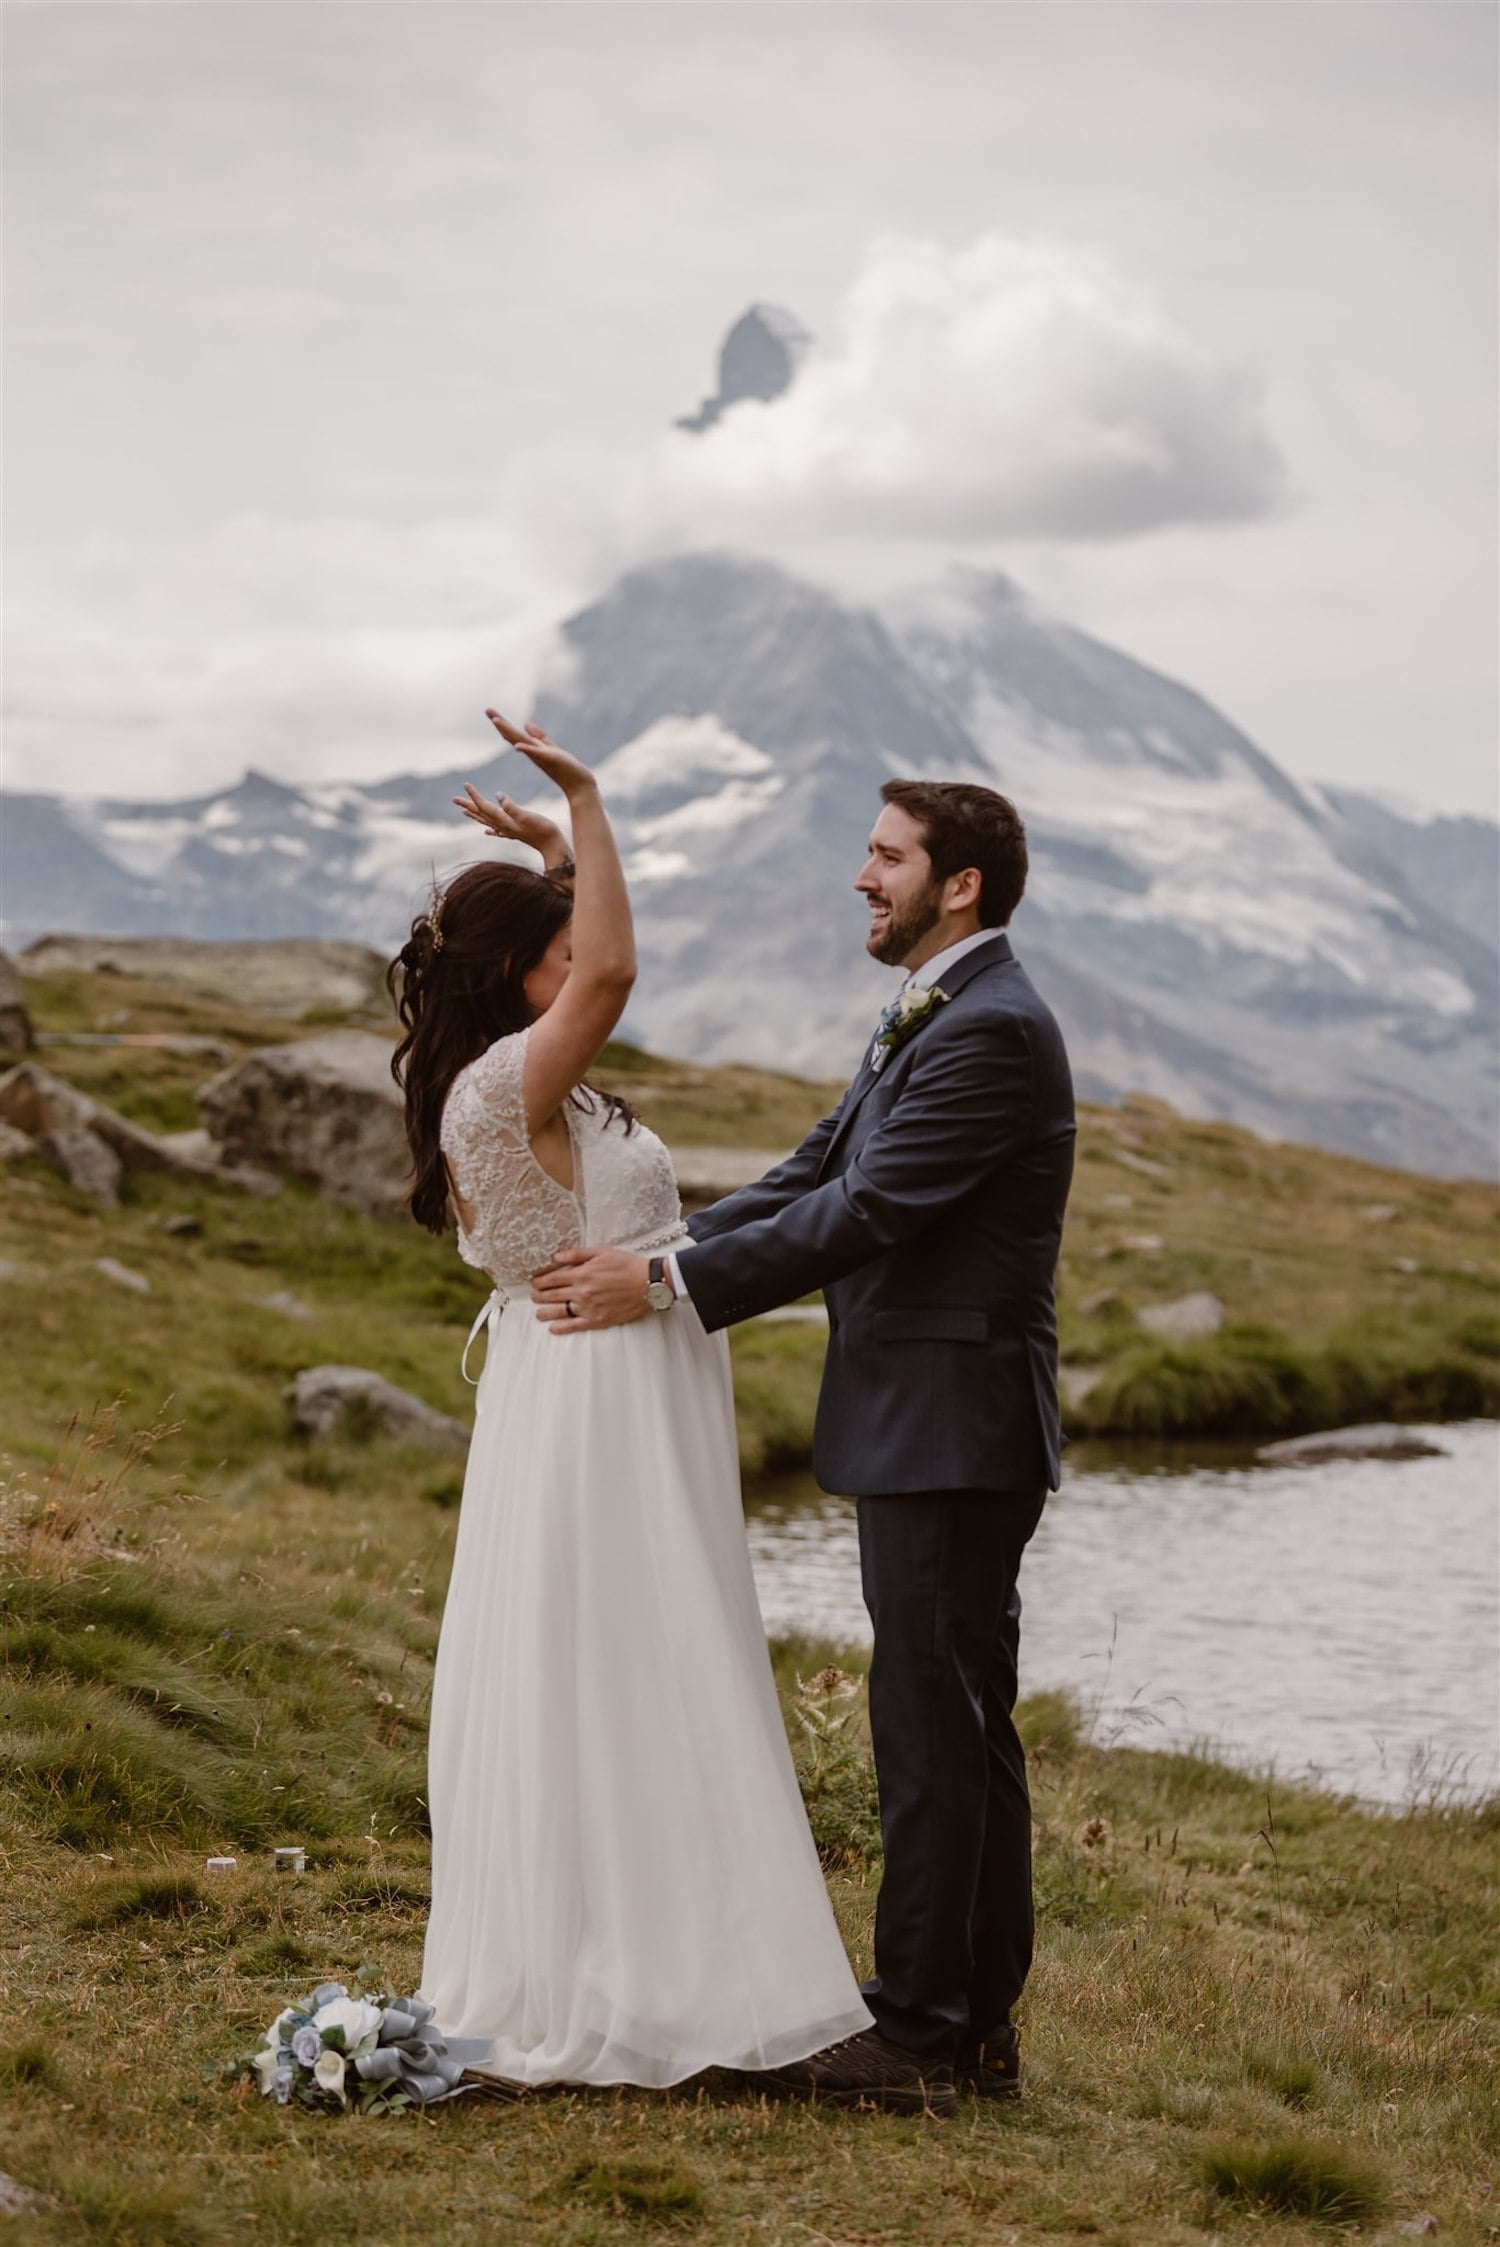 Fun elopement in Zermatt